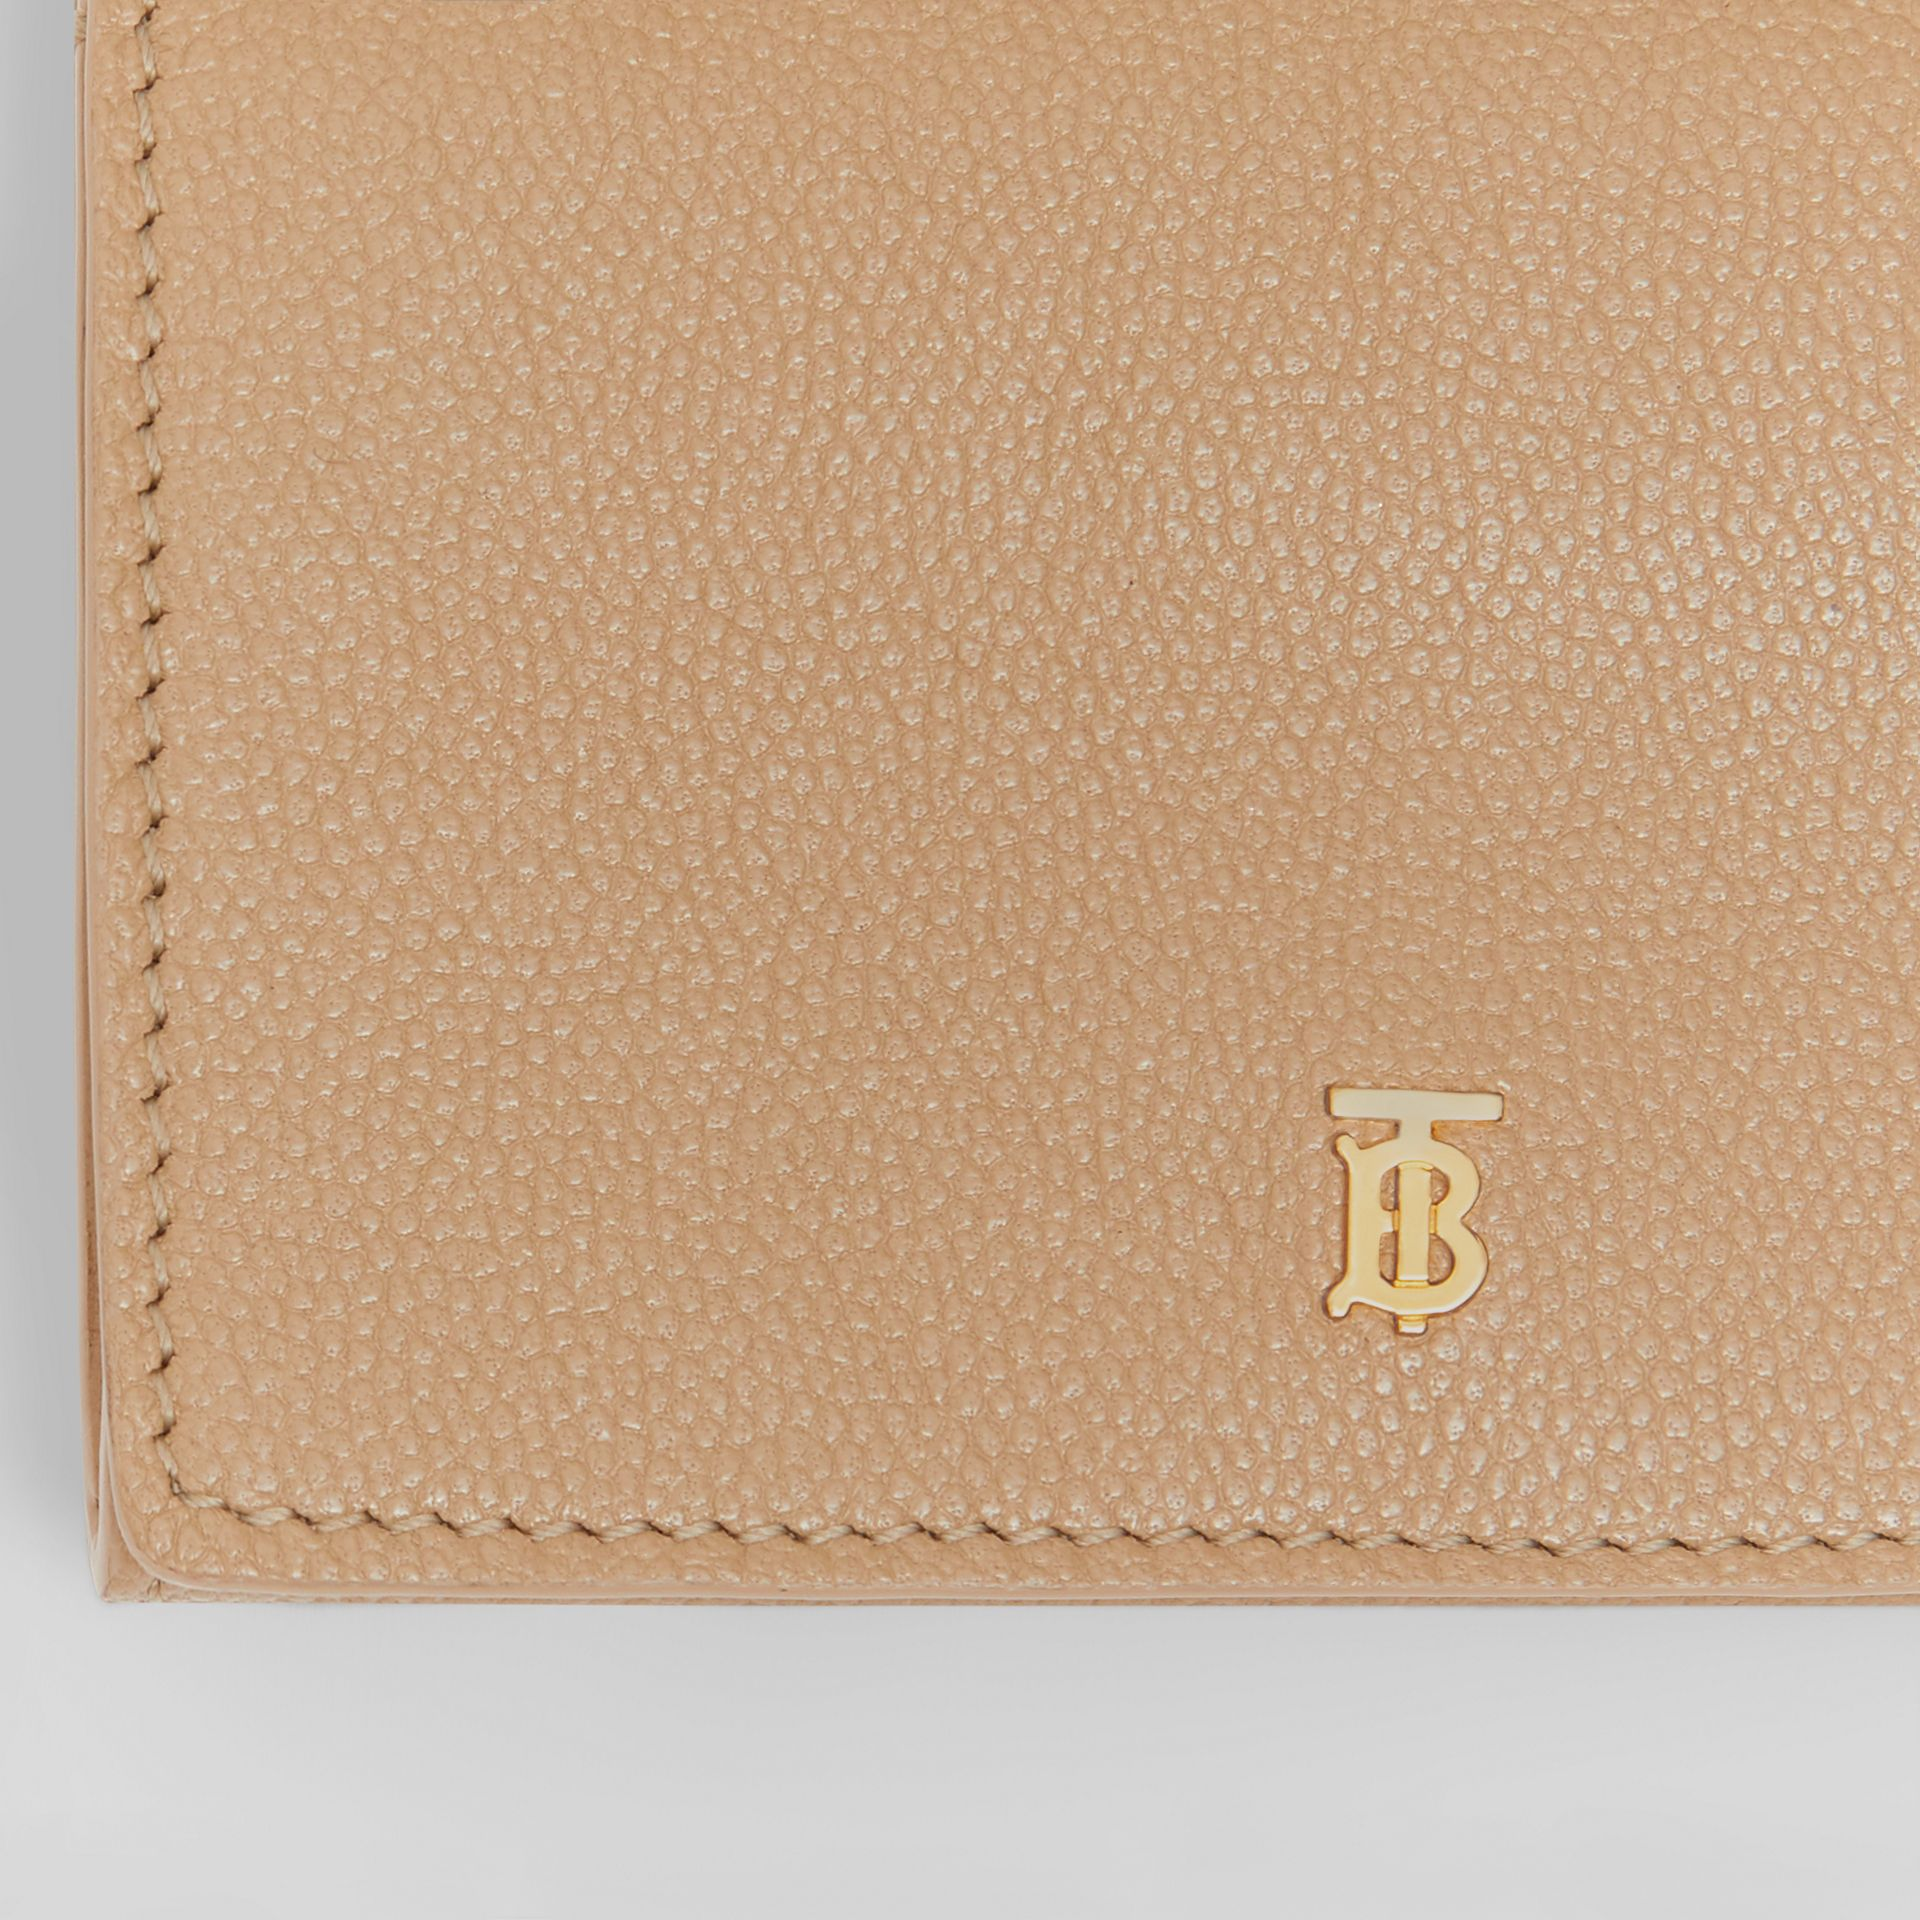 Small Grainy Leather Folding Wallet in Archive Beige - Women | Burberry - gallery image 1